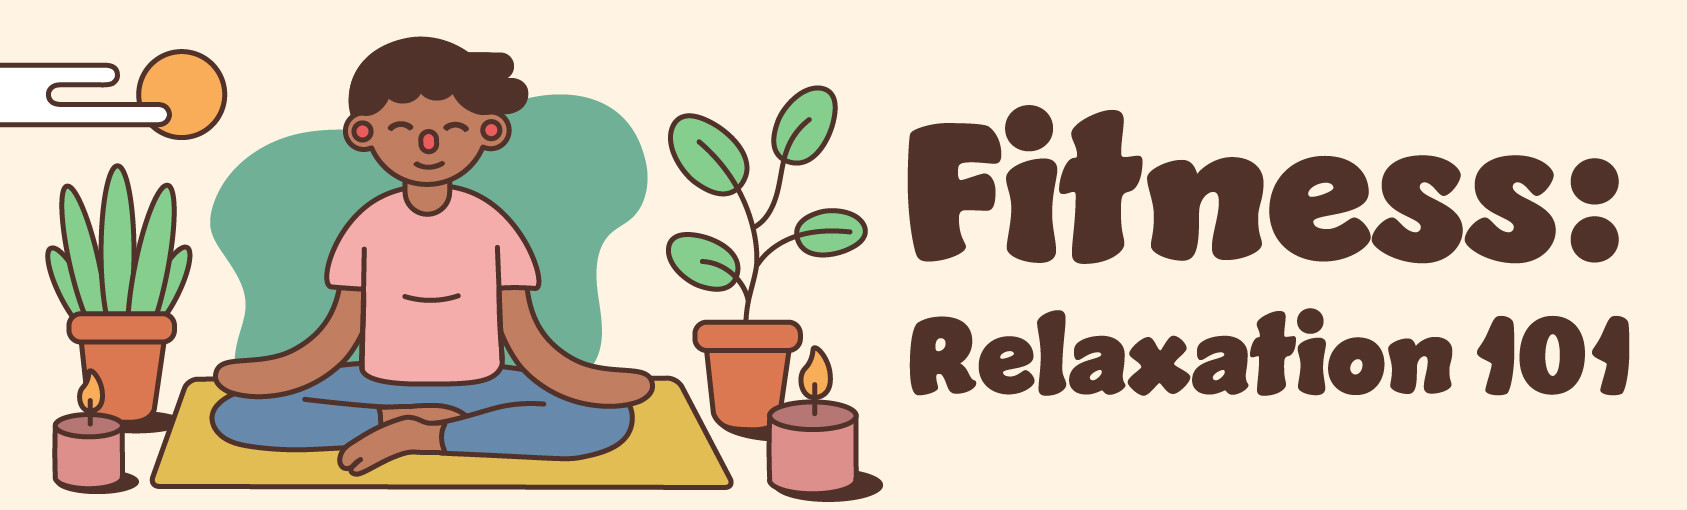 Fitness: Relaxation 101 banner